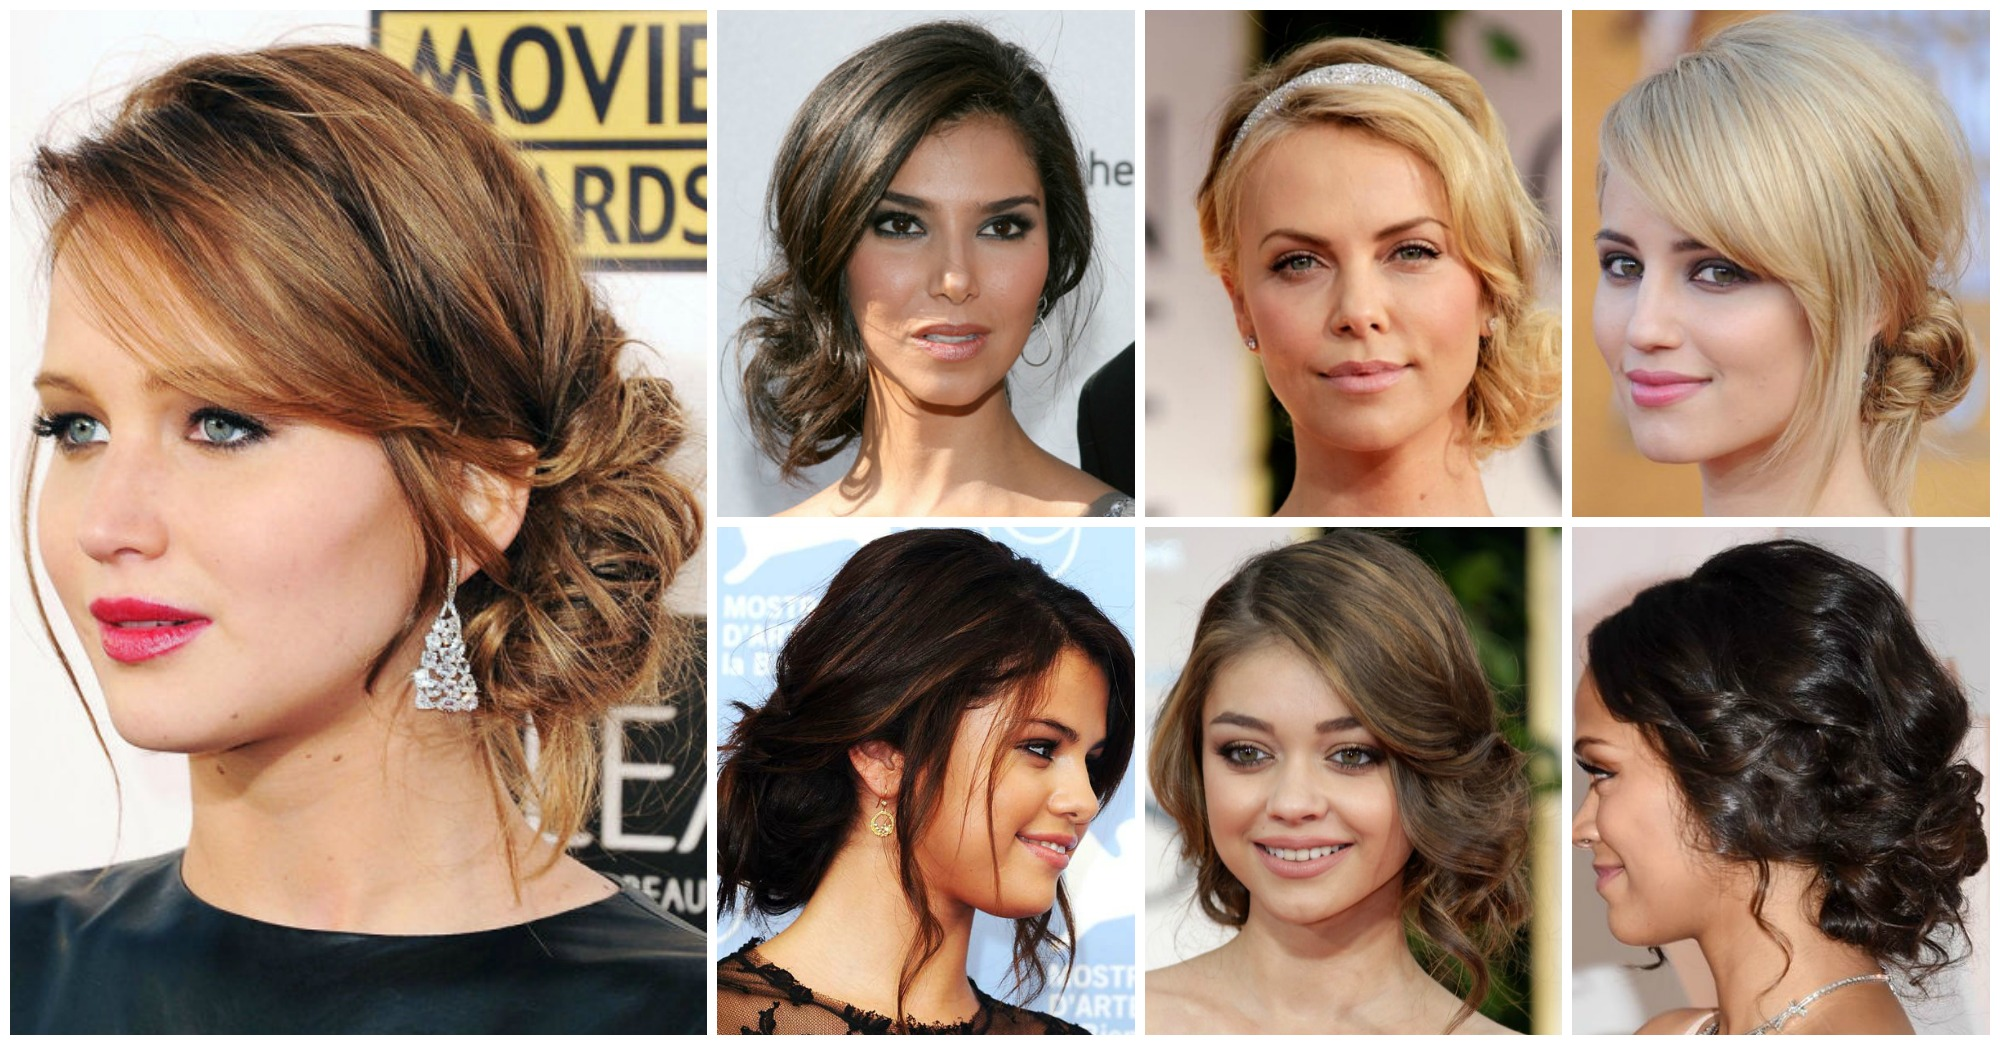 17 Astonishing Celebrity Hairstyles You Need to Try in 2016